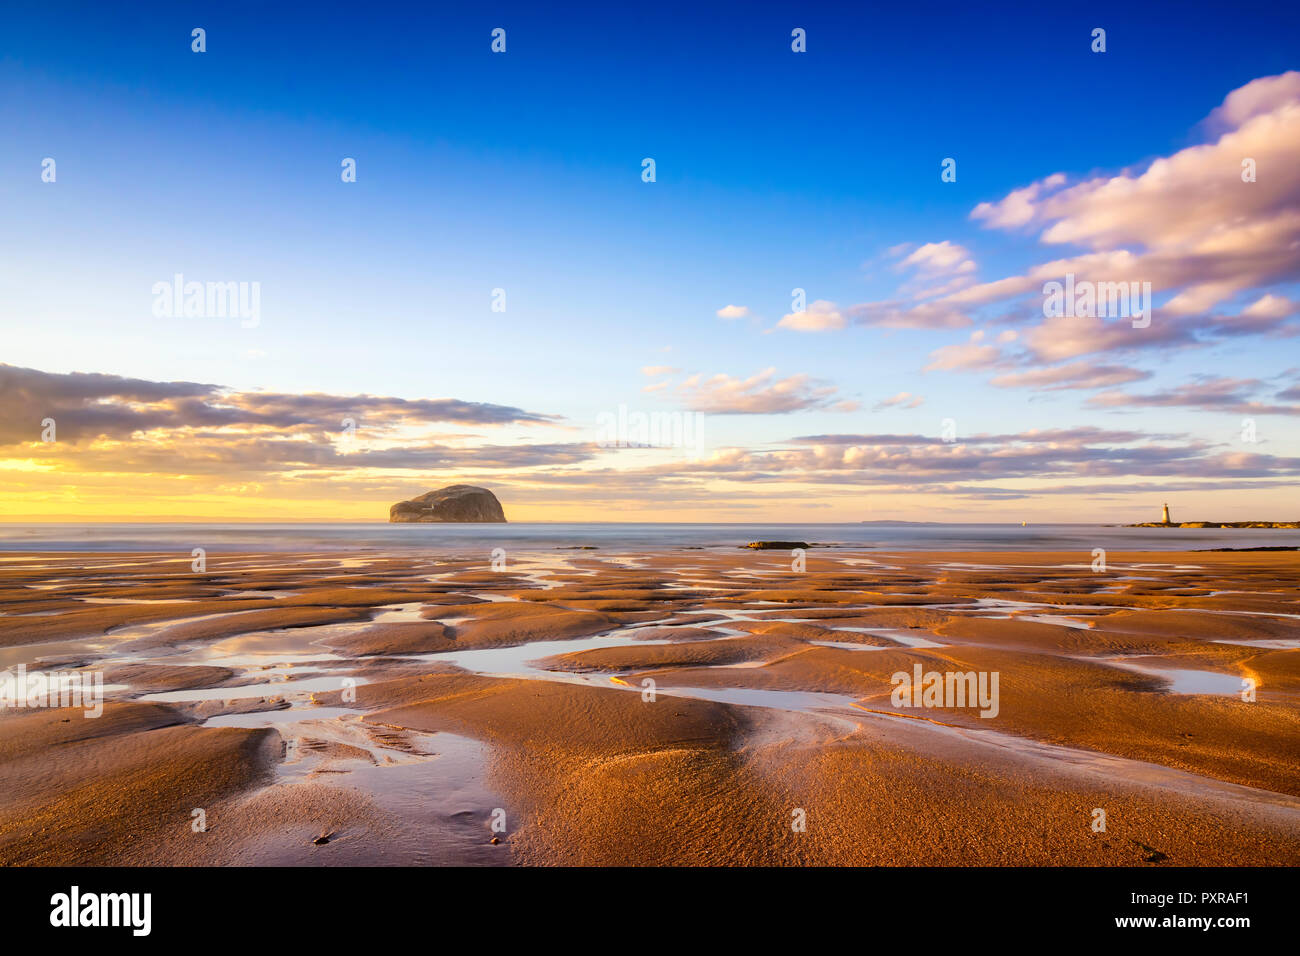 UK, Scotland, East Lothian, North Berwick, Firth of Forth, view of Bass Rock (world famous Gannet Colony) at sunset, Lighthouse, sand, beach Stock Photo